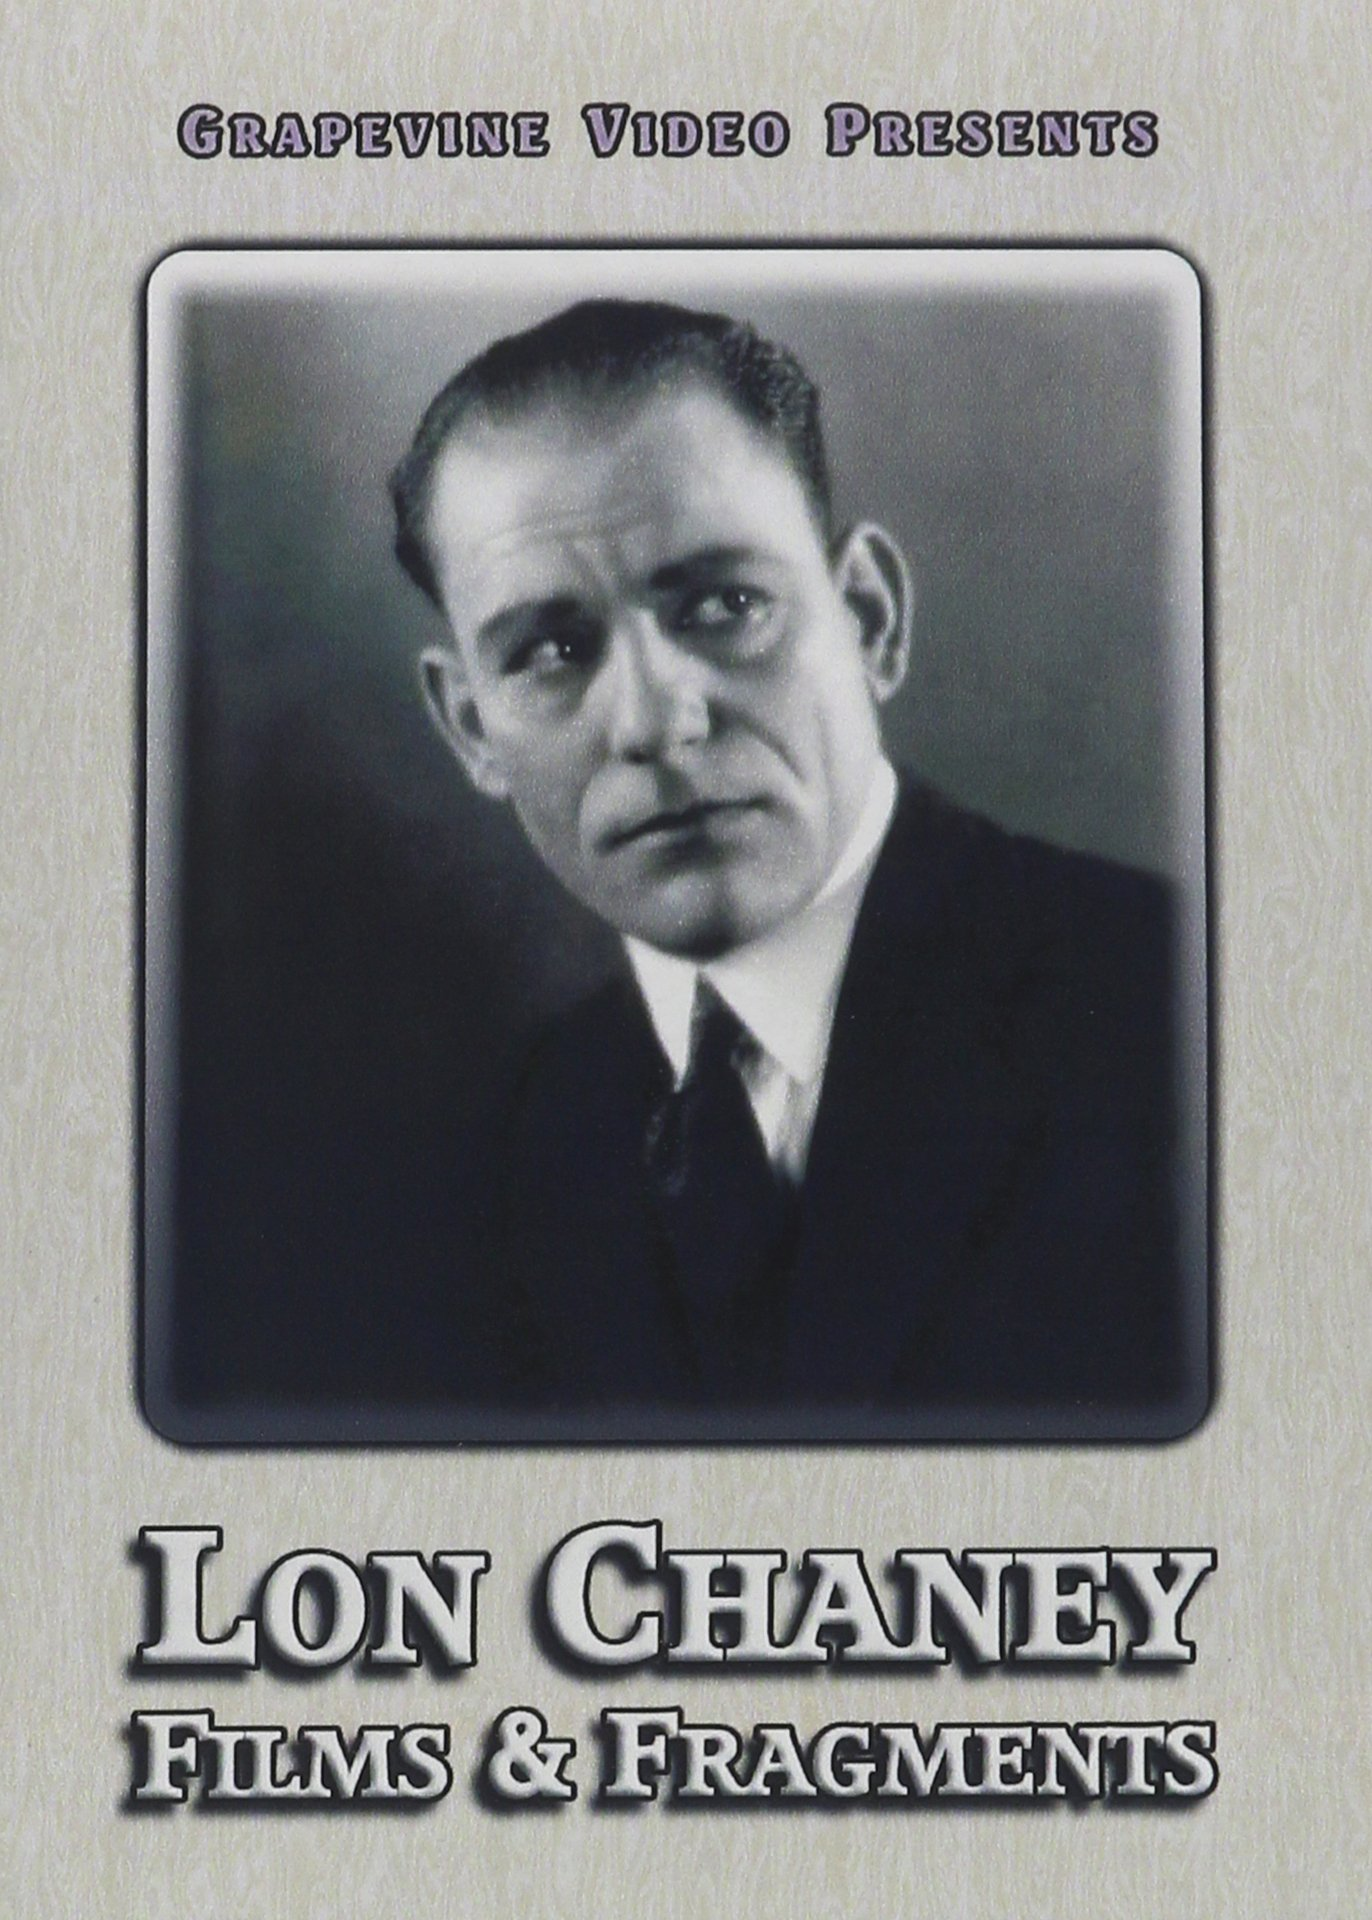 DVD : Lon Chaney Films And Fragments (1914-1922) (Silent Movie)